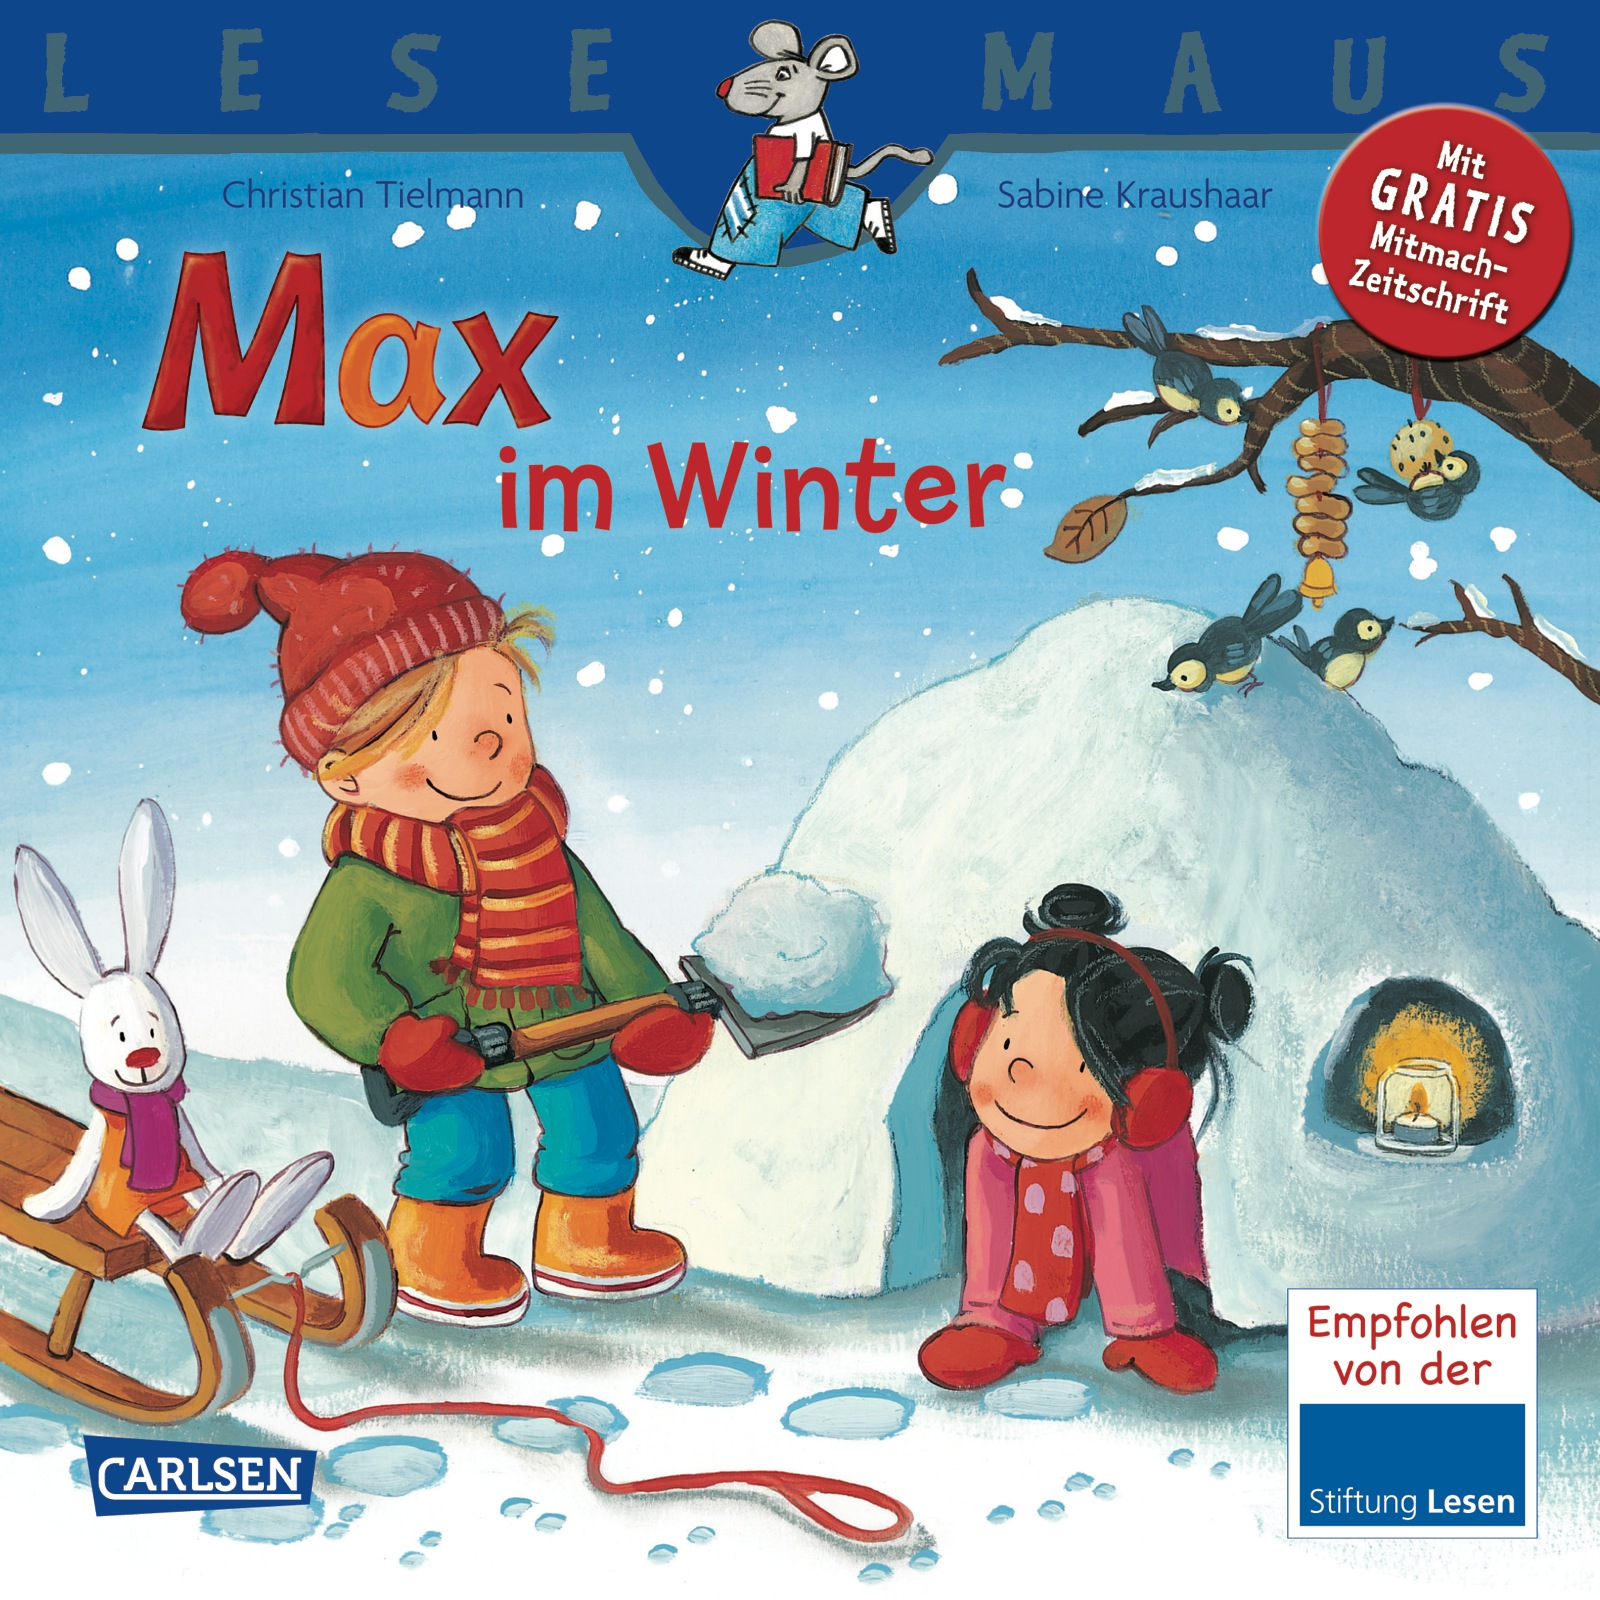 Lesemaus - Band 63: Max im Winter - Christian Tielmann [Broschiert]